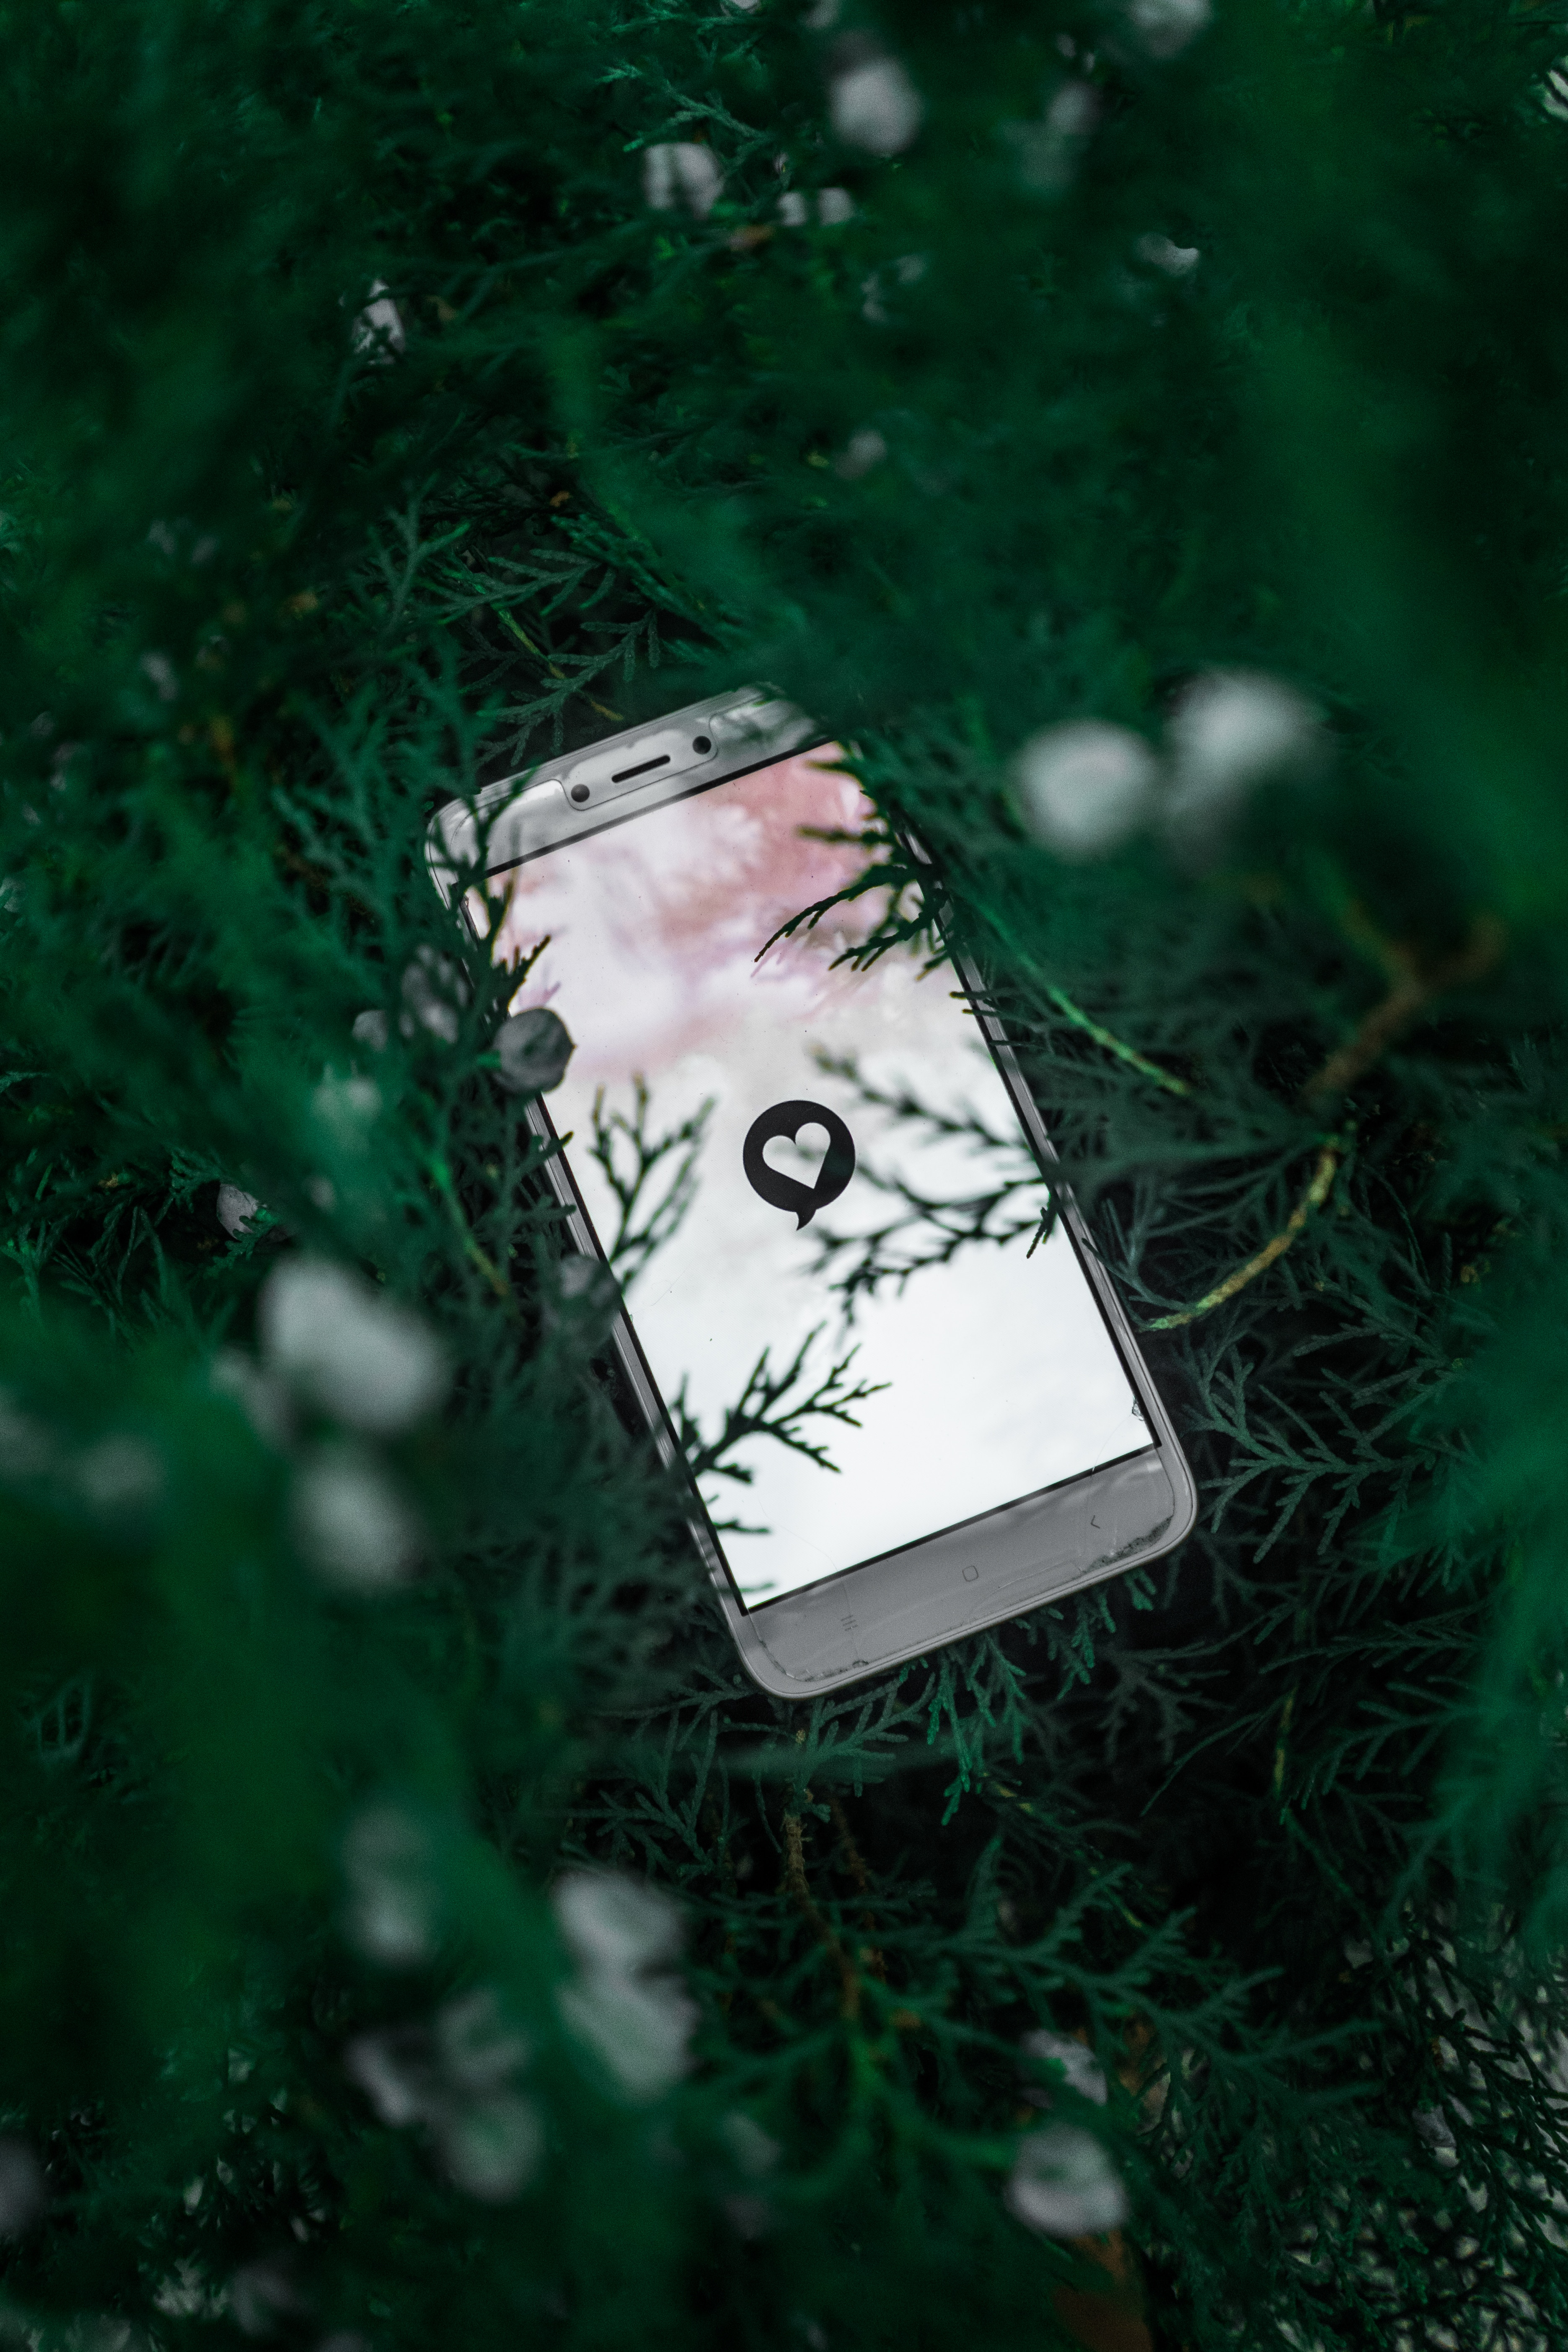 61316 download wallpaper Technologies, Technology, Telephone, Screen, Heart, Symbol, Plant, Branches screensavers and pictures for free